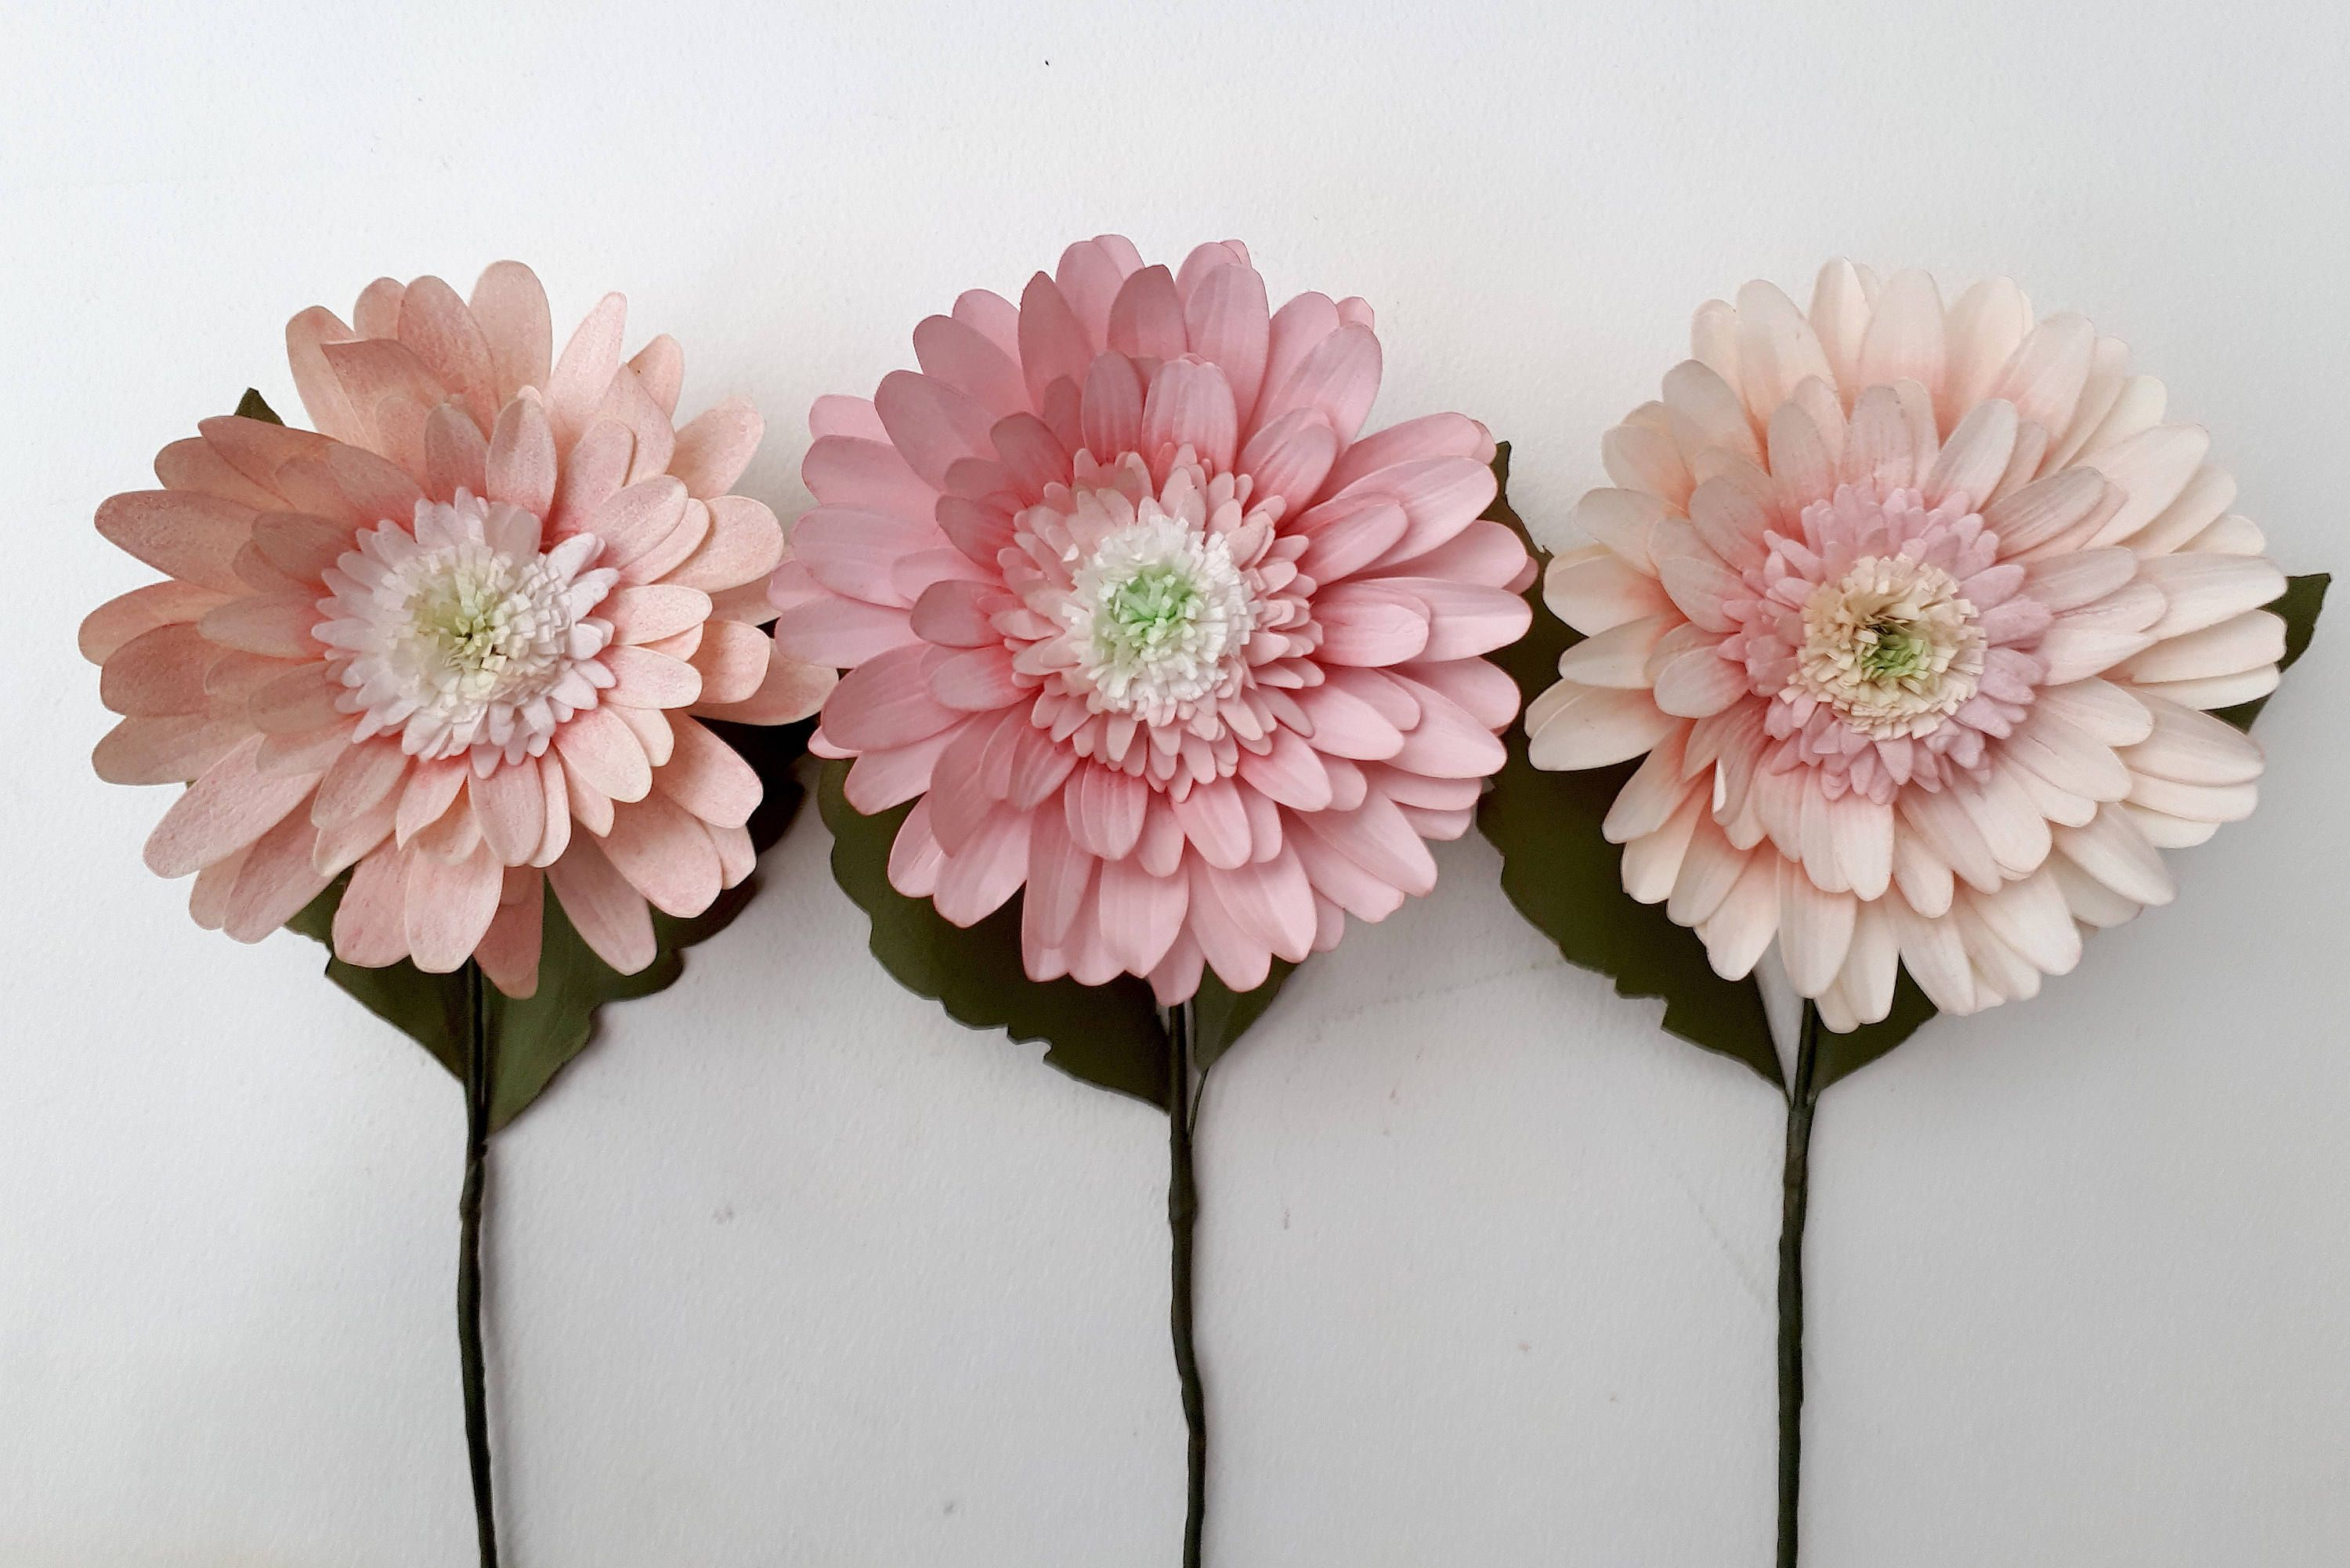 Gerbera Paper Daisies X 3 Realistic Flowers Made From Coffee Filter